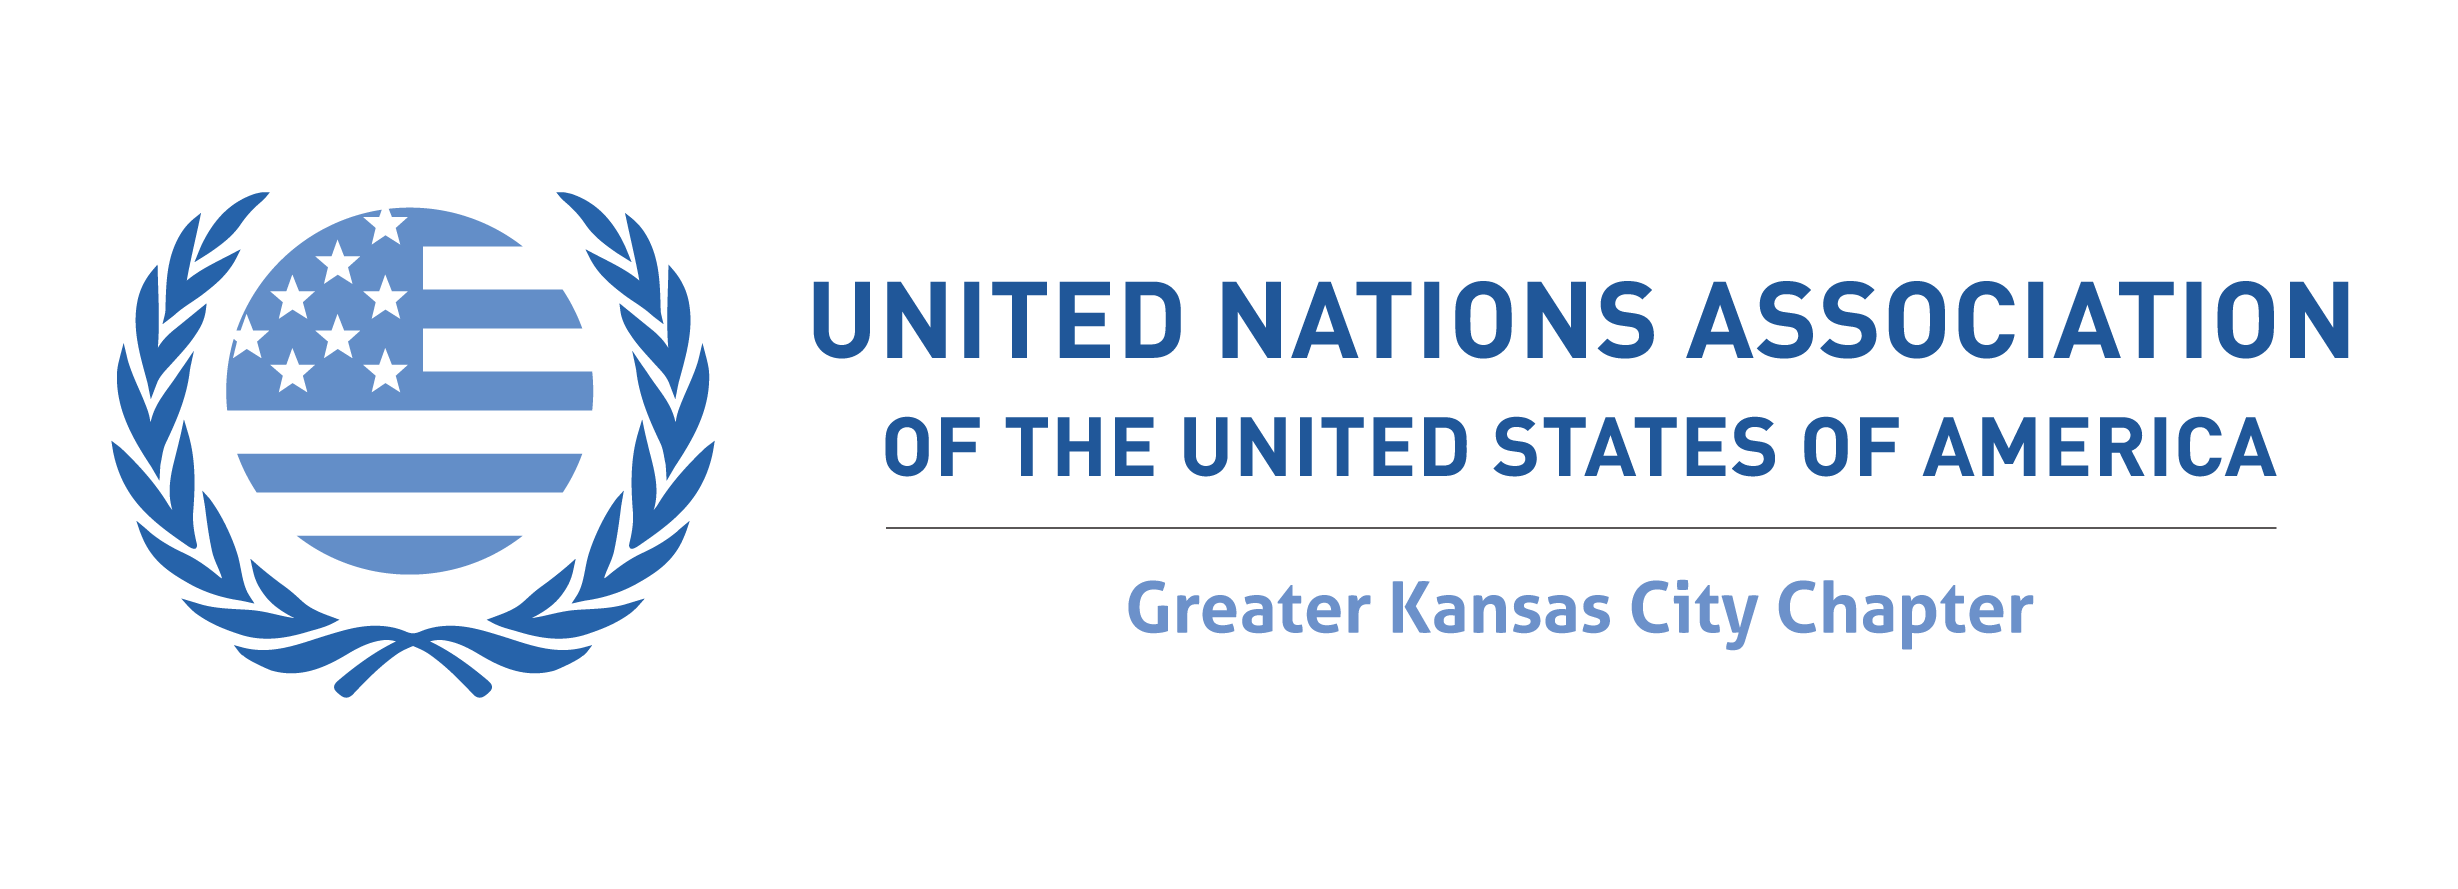 United Nations Association of the United States of America, Greater Kansas City Chapter